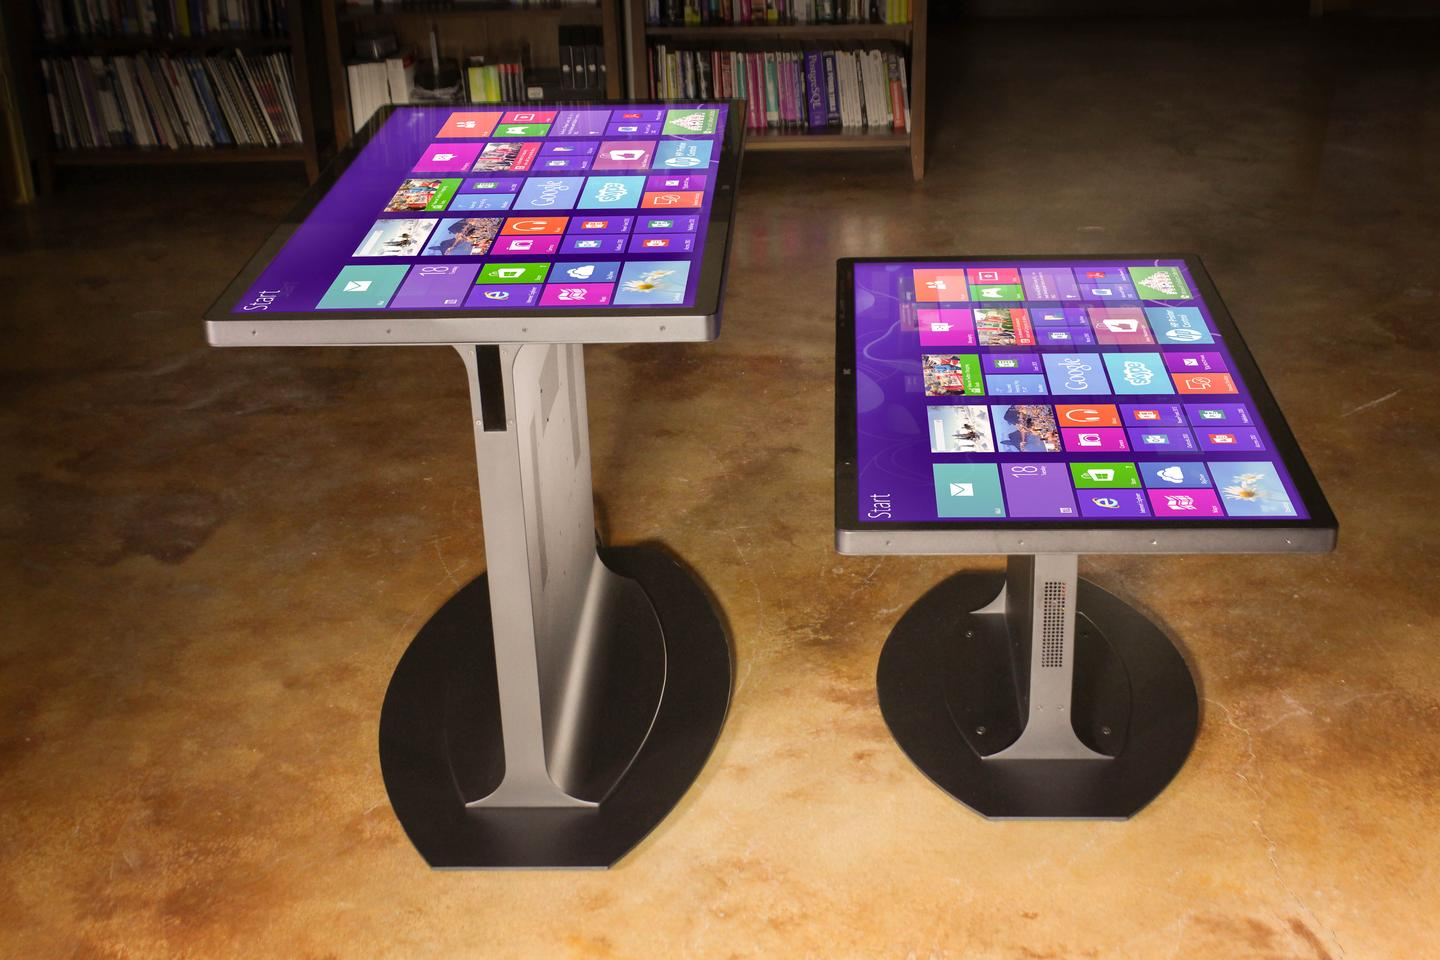 Ideum has teamed up with 3M Touch Systems to launch the Platform 46 range of Windows 8 multi-touch tables